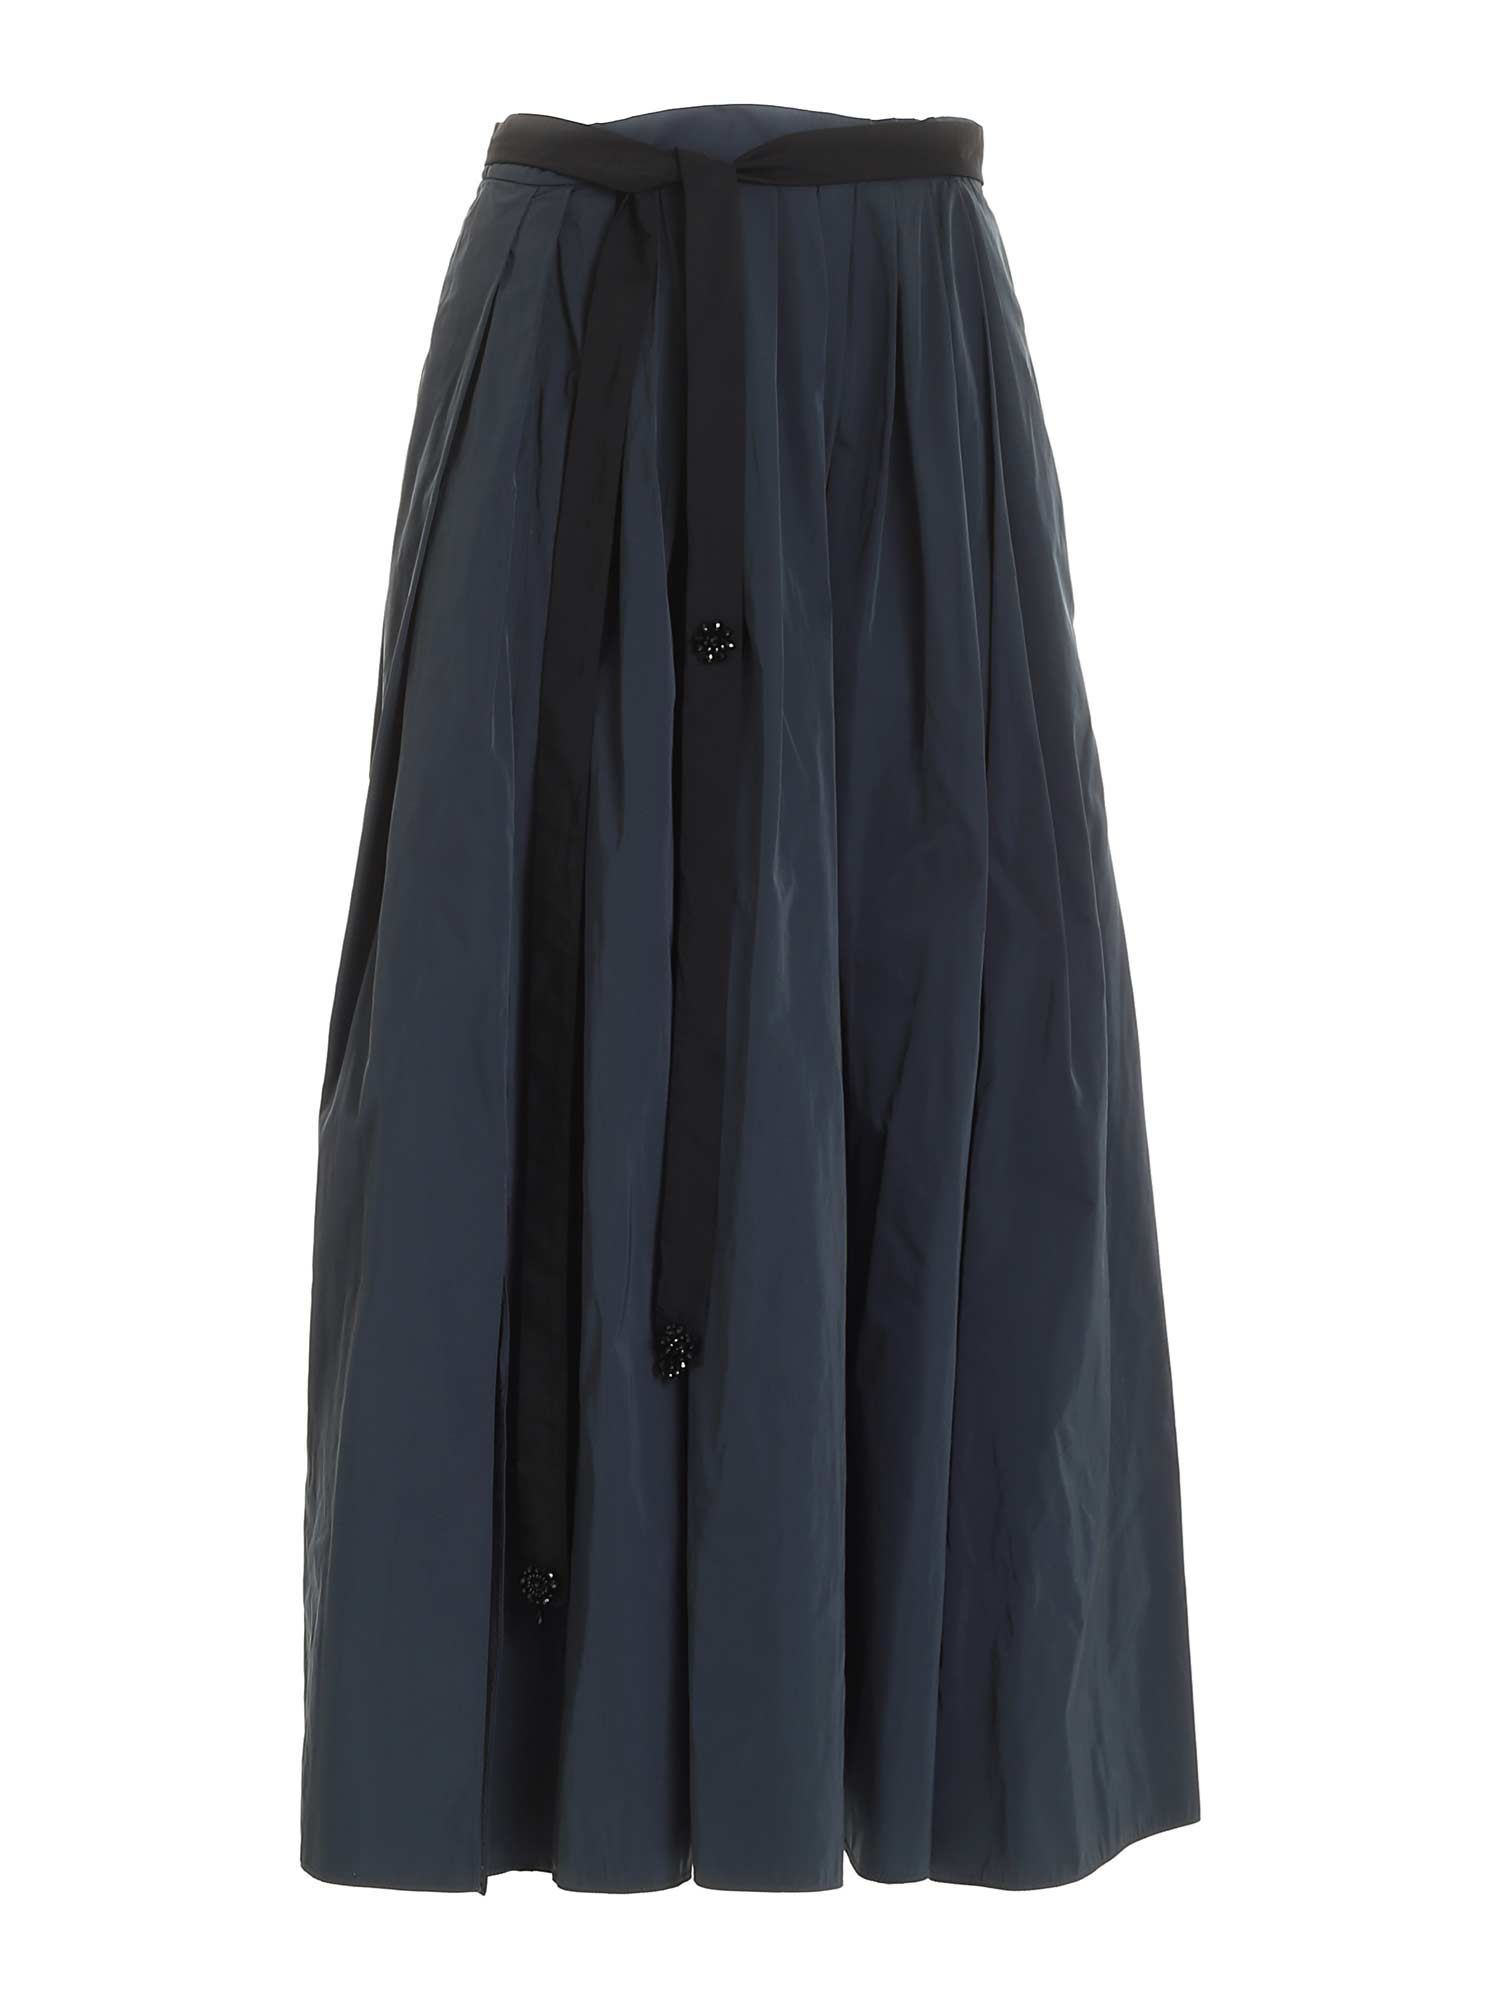 Max Mara ASKIRT SKIRT IN DARK GREEN